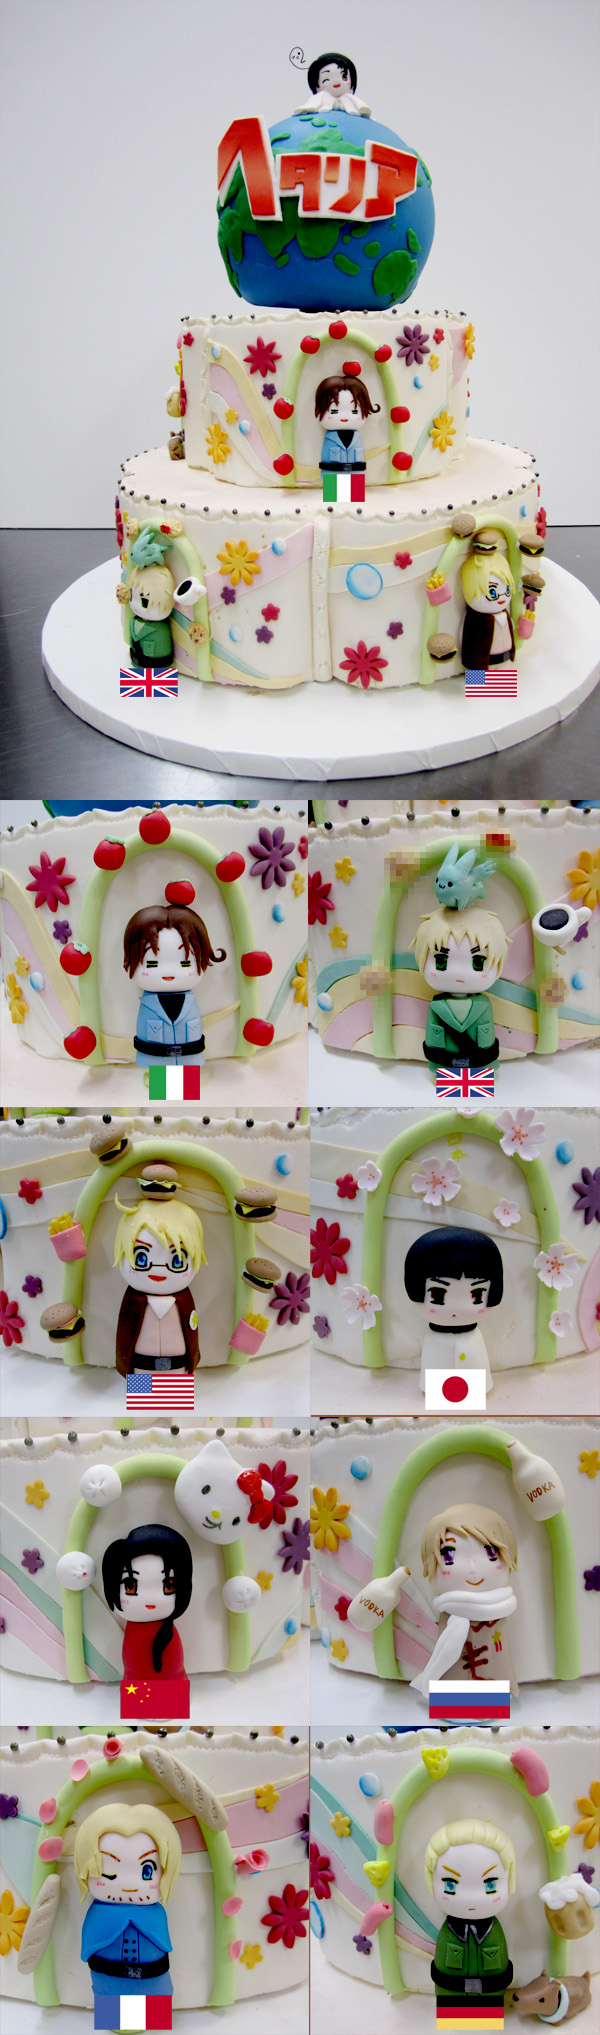 Hetalia Cake by KralleCakes